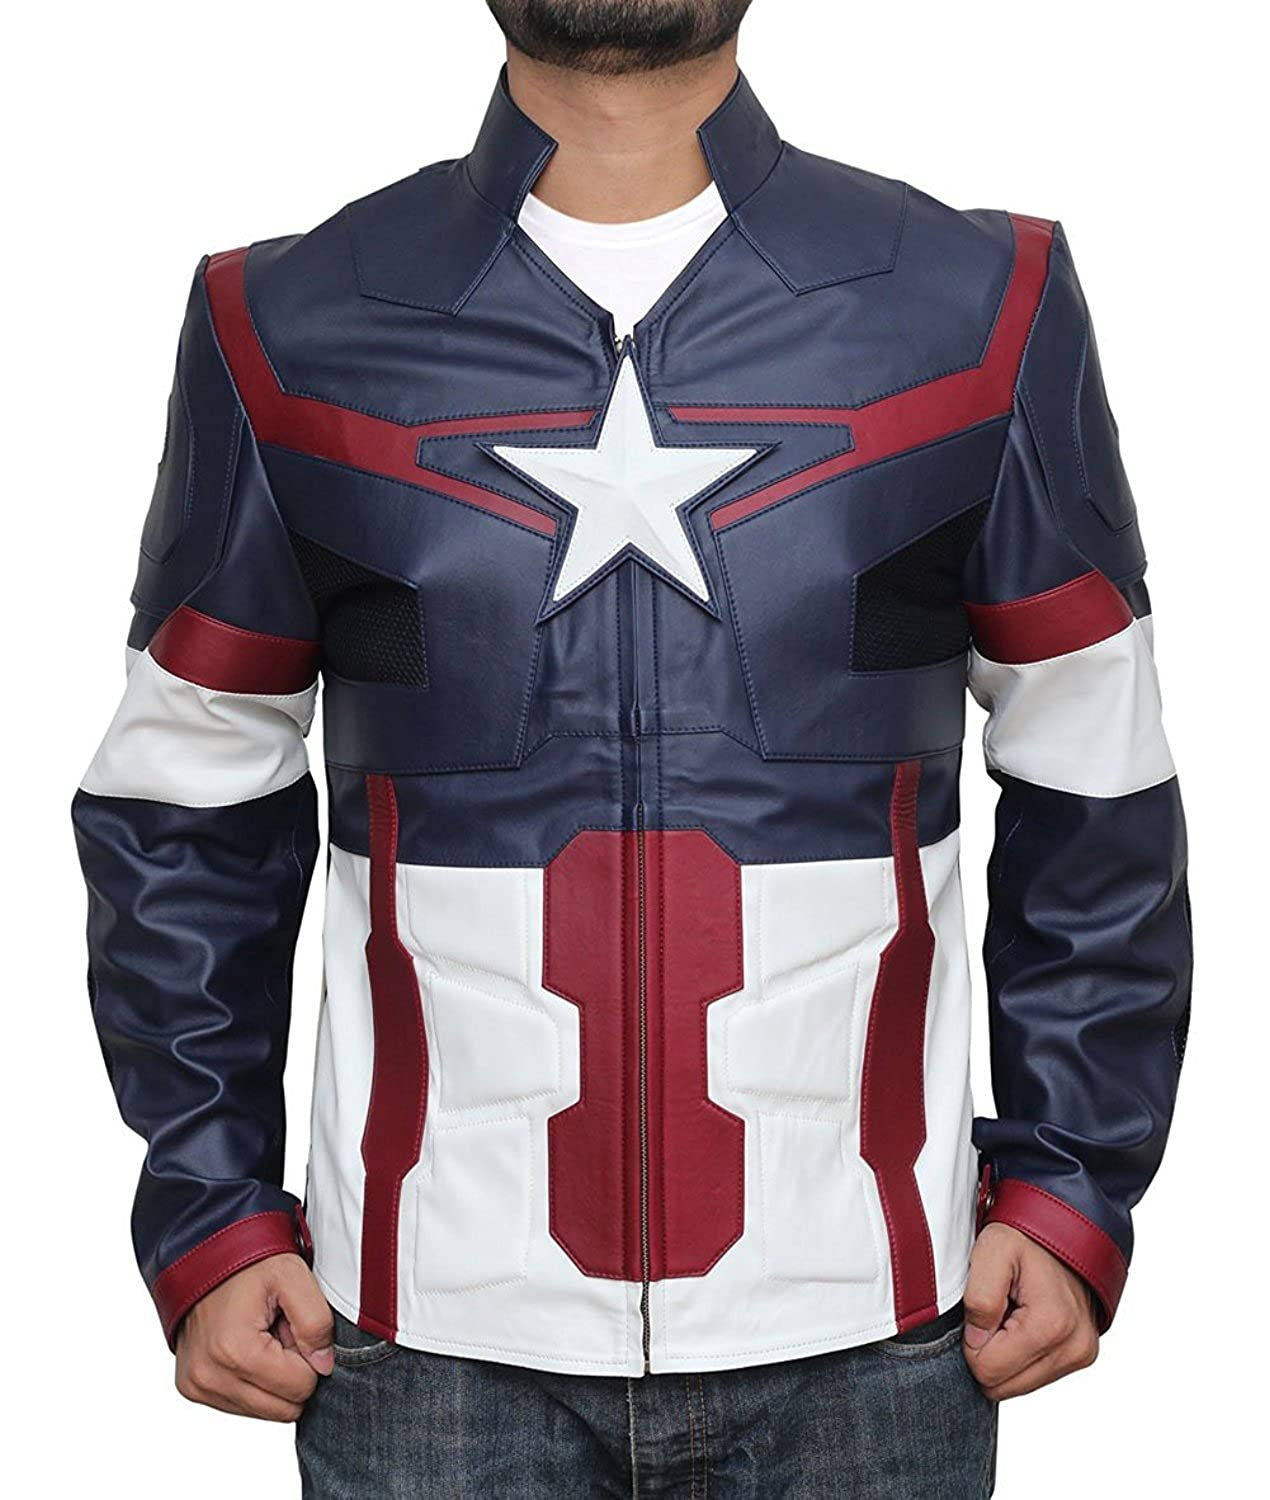 Leather jacket olx - Galaxy Star Lord America Favorite Captain Jacket